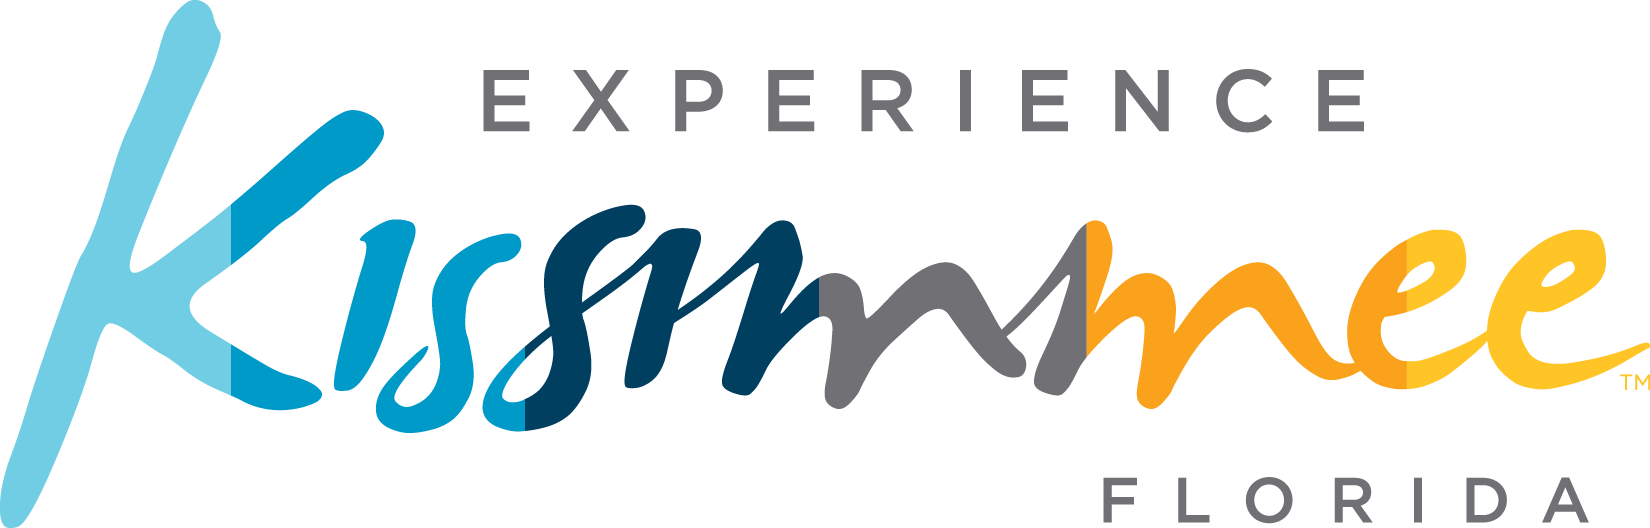 Experience-Kissimmee-Vector